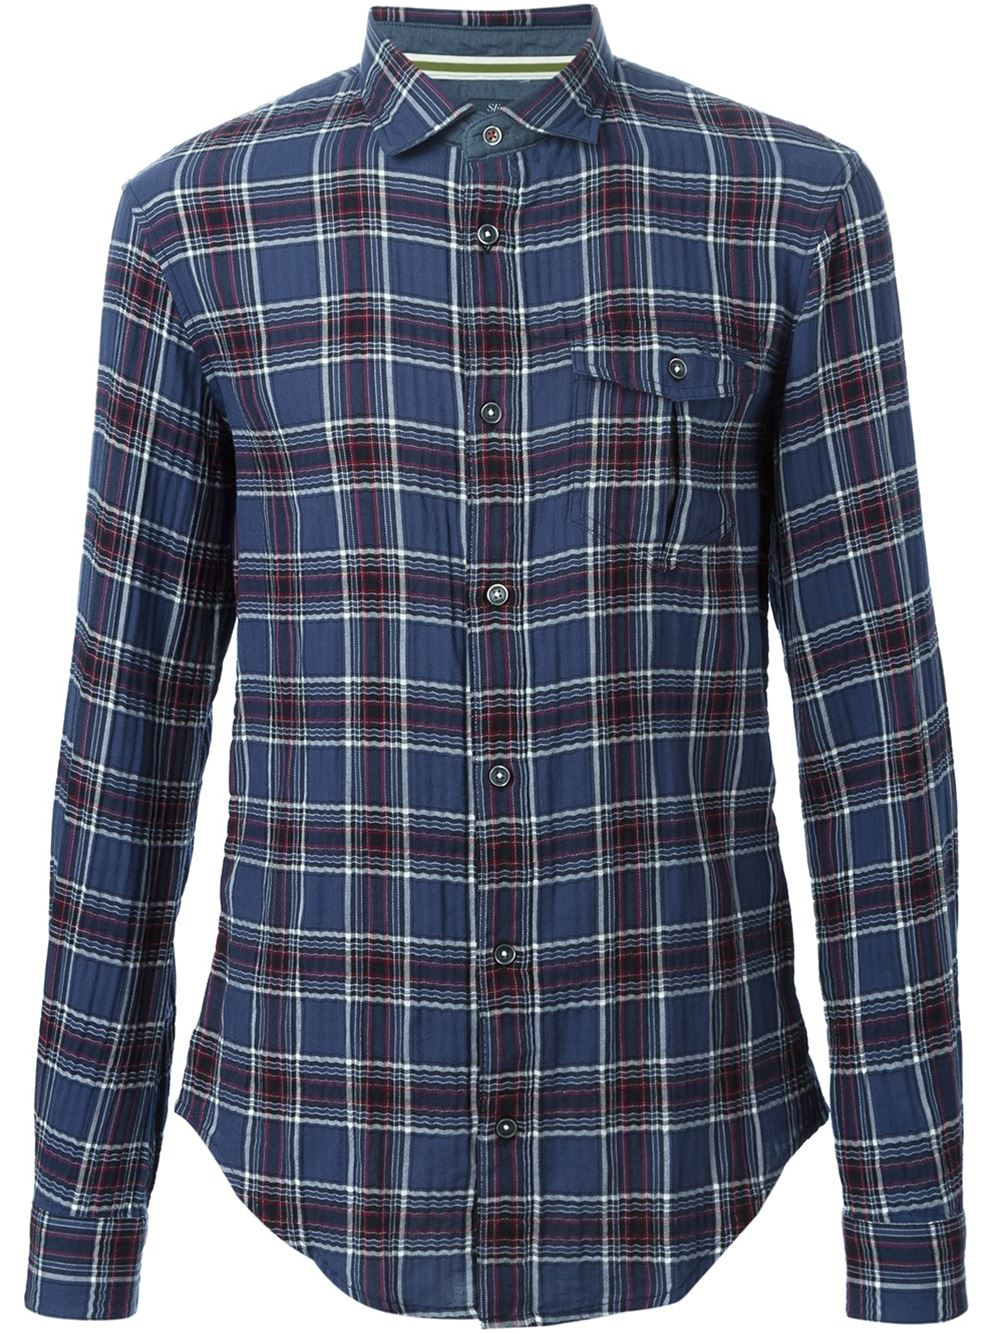 Lyst Armani Jeans Checked Shirt In Flannel In Blue For Men